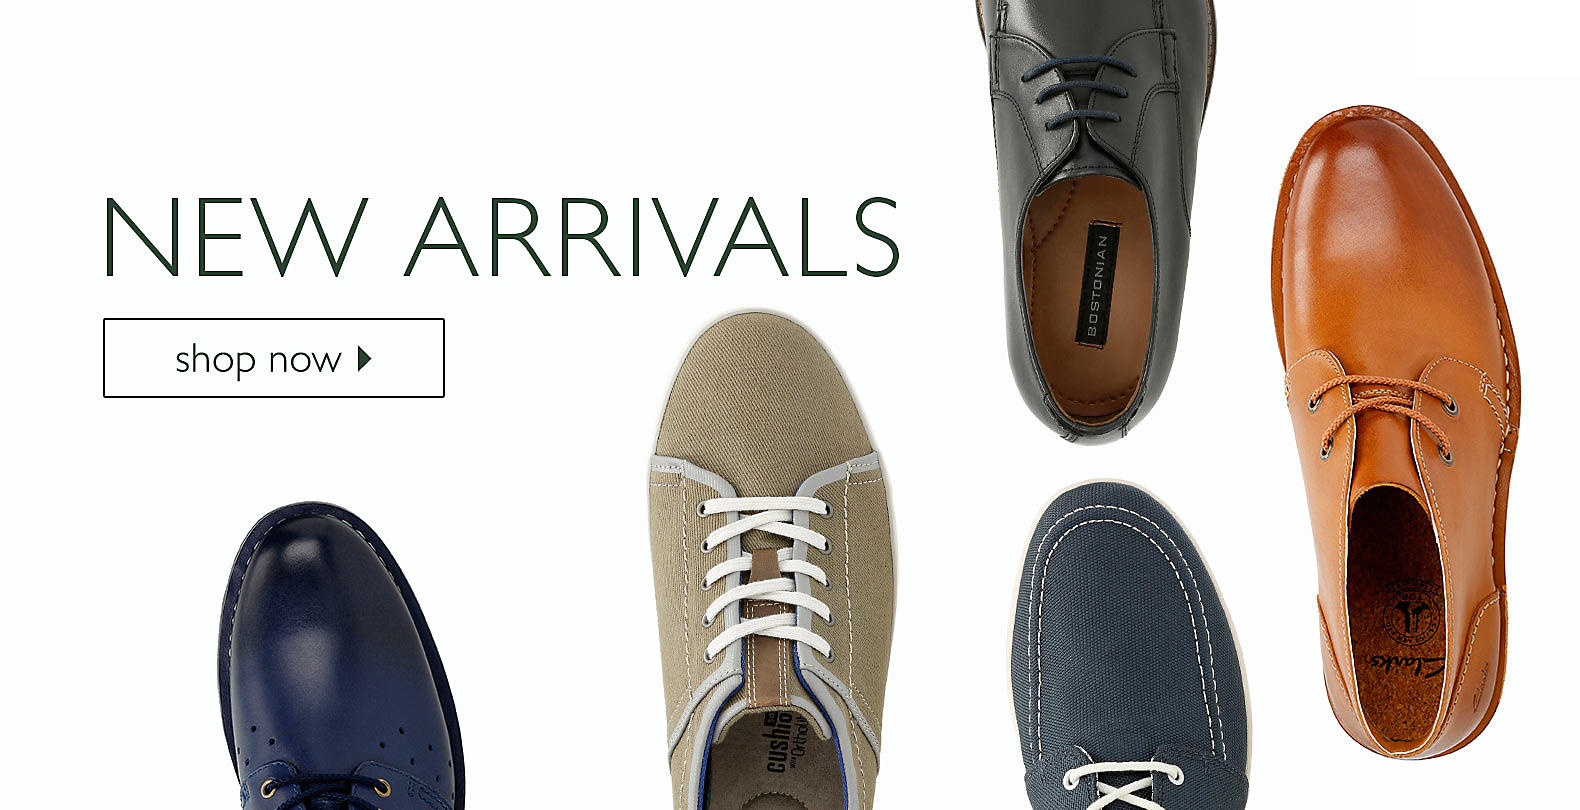 Shop Clarks Men's New Arrivals